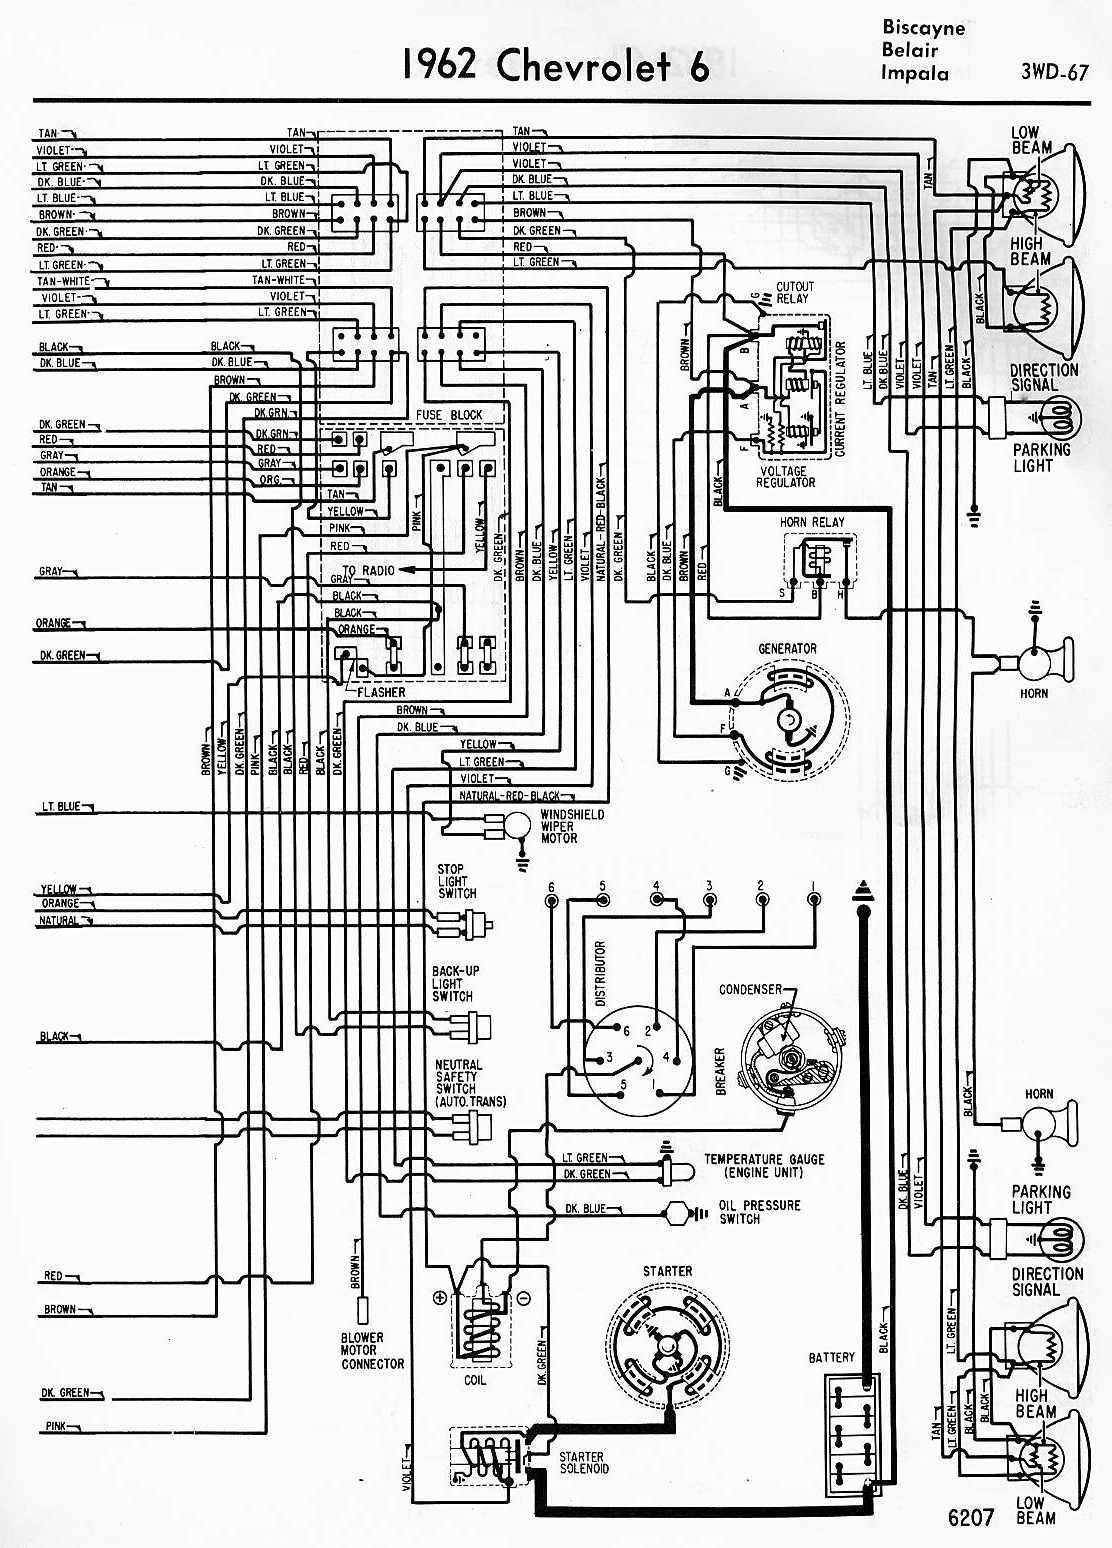 hight resolution of 55 chevy belair wiring diagram free picture wiring diagram source 64 chevy wiring diagram 55 chevy belair wiring diagram free picture